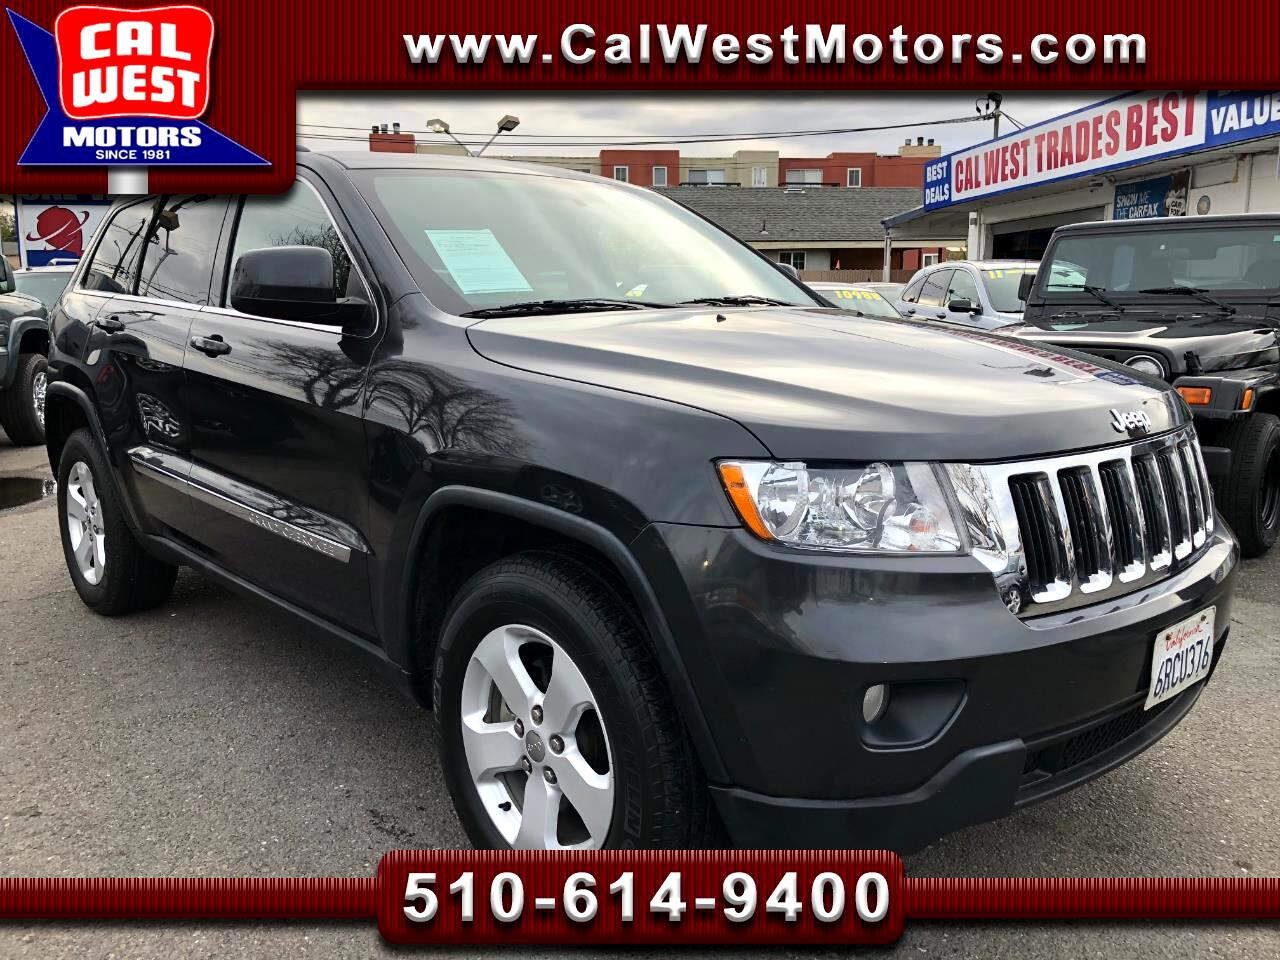 2011 Jeep Grand Cherokee 4WD Laredo Roof Leathr LowMiles 1Owner SuperNice